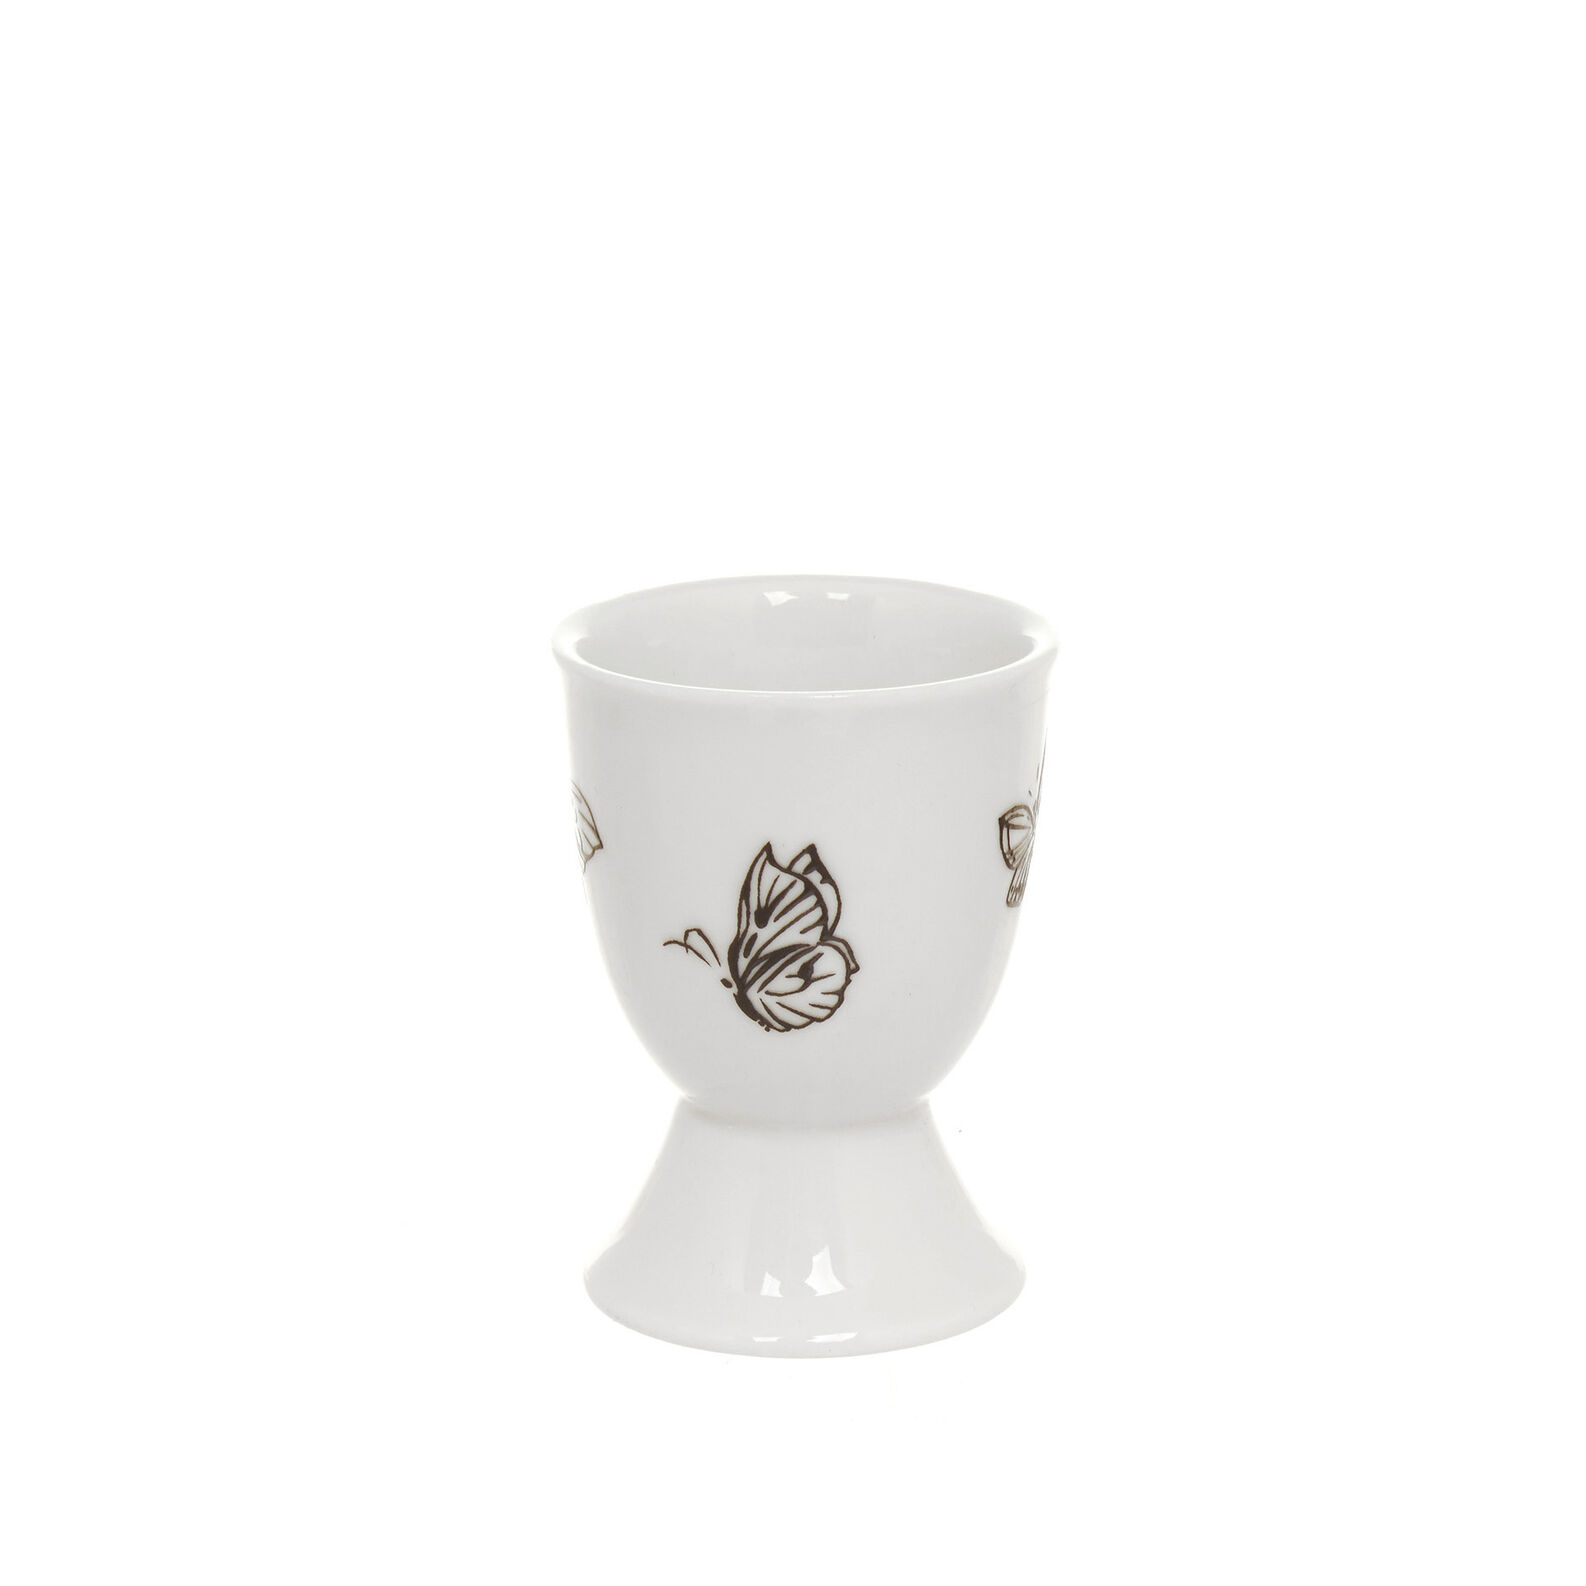 Egg holder in New Bone China with butterflies